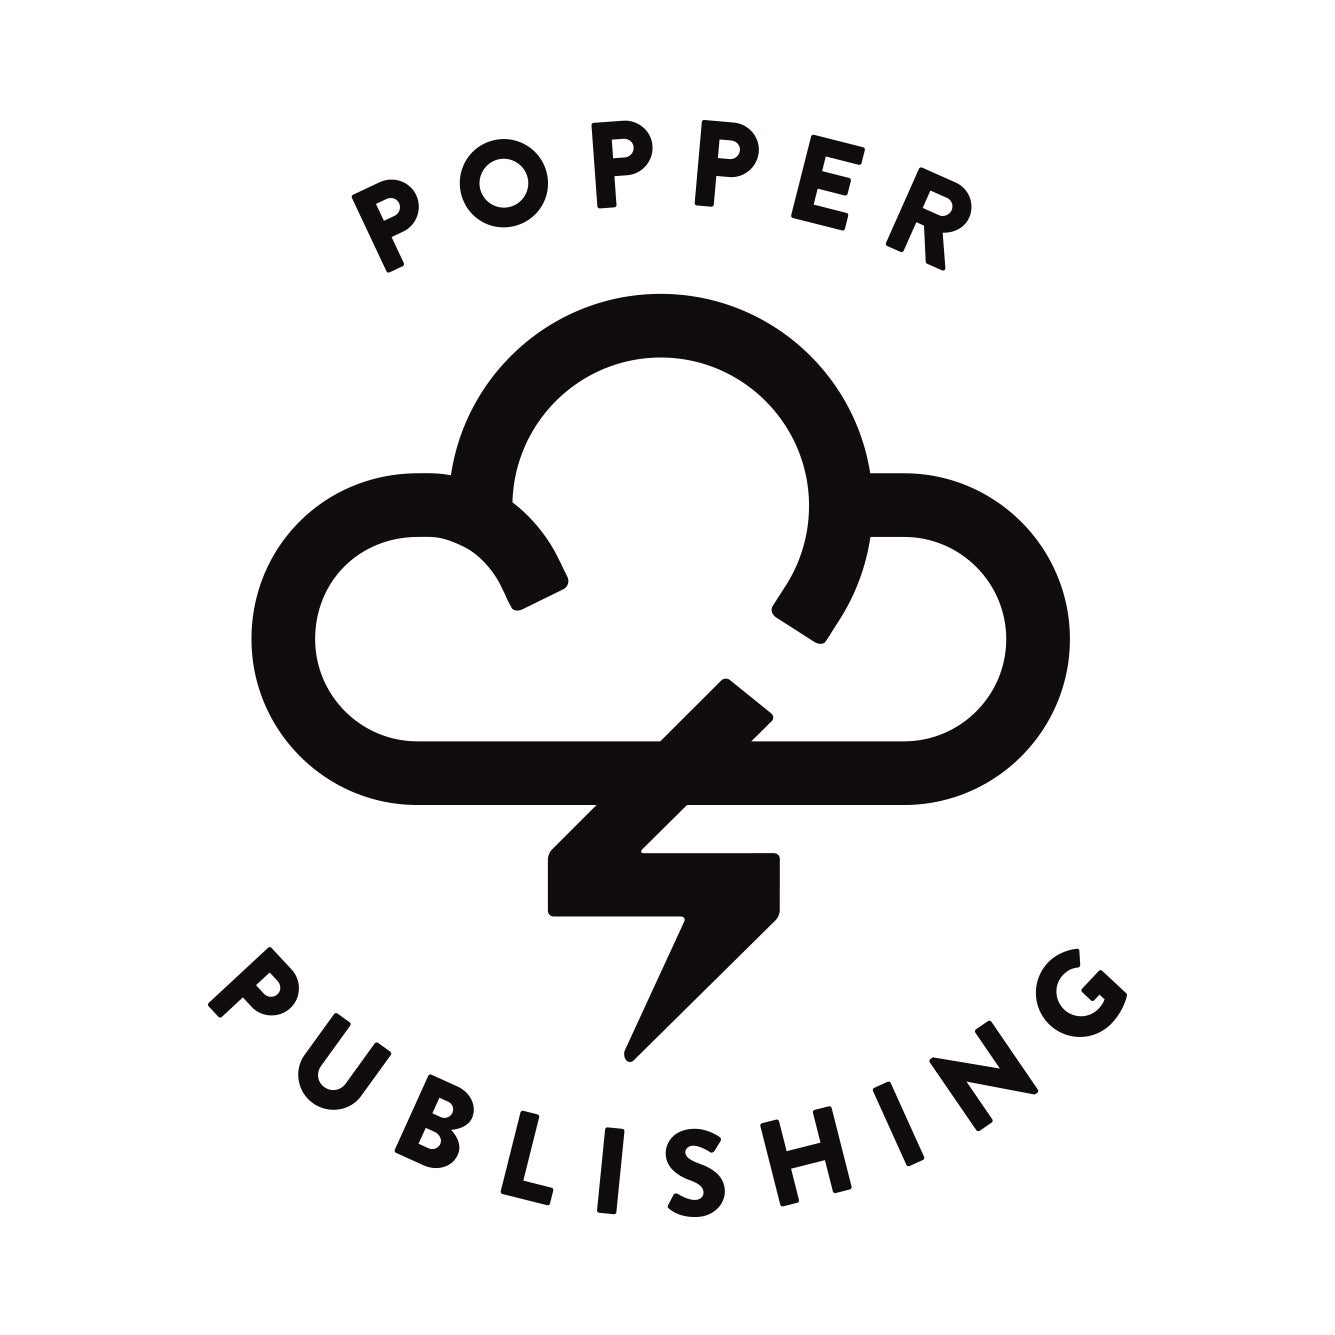 popper.publishing